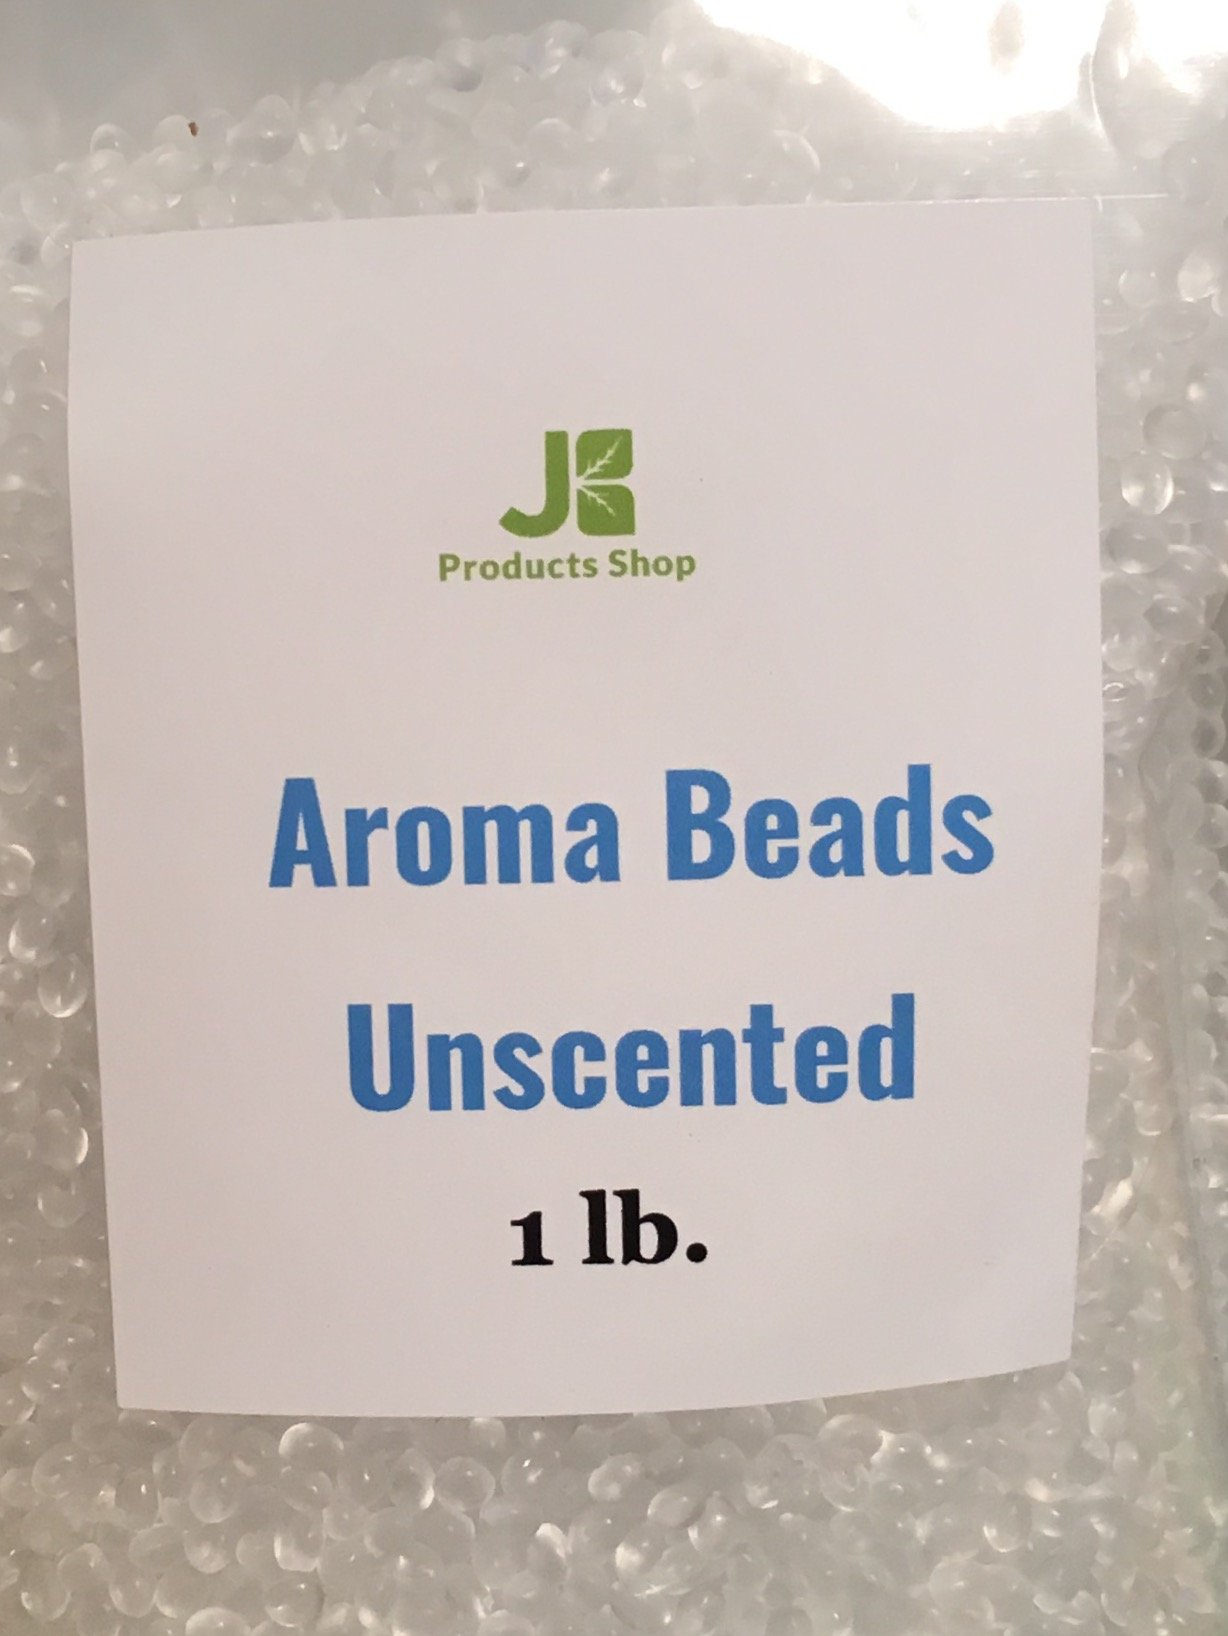 Aroma Beads Unscented 1 lb - Ready for Creating Your Own Scent. Make a Long Lasting Home Fragrance!